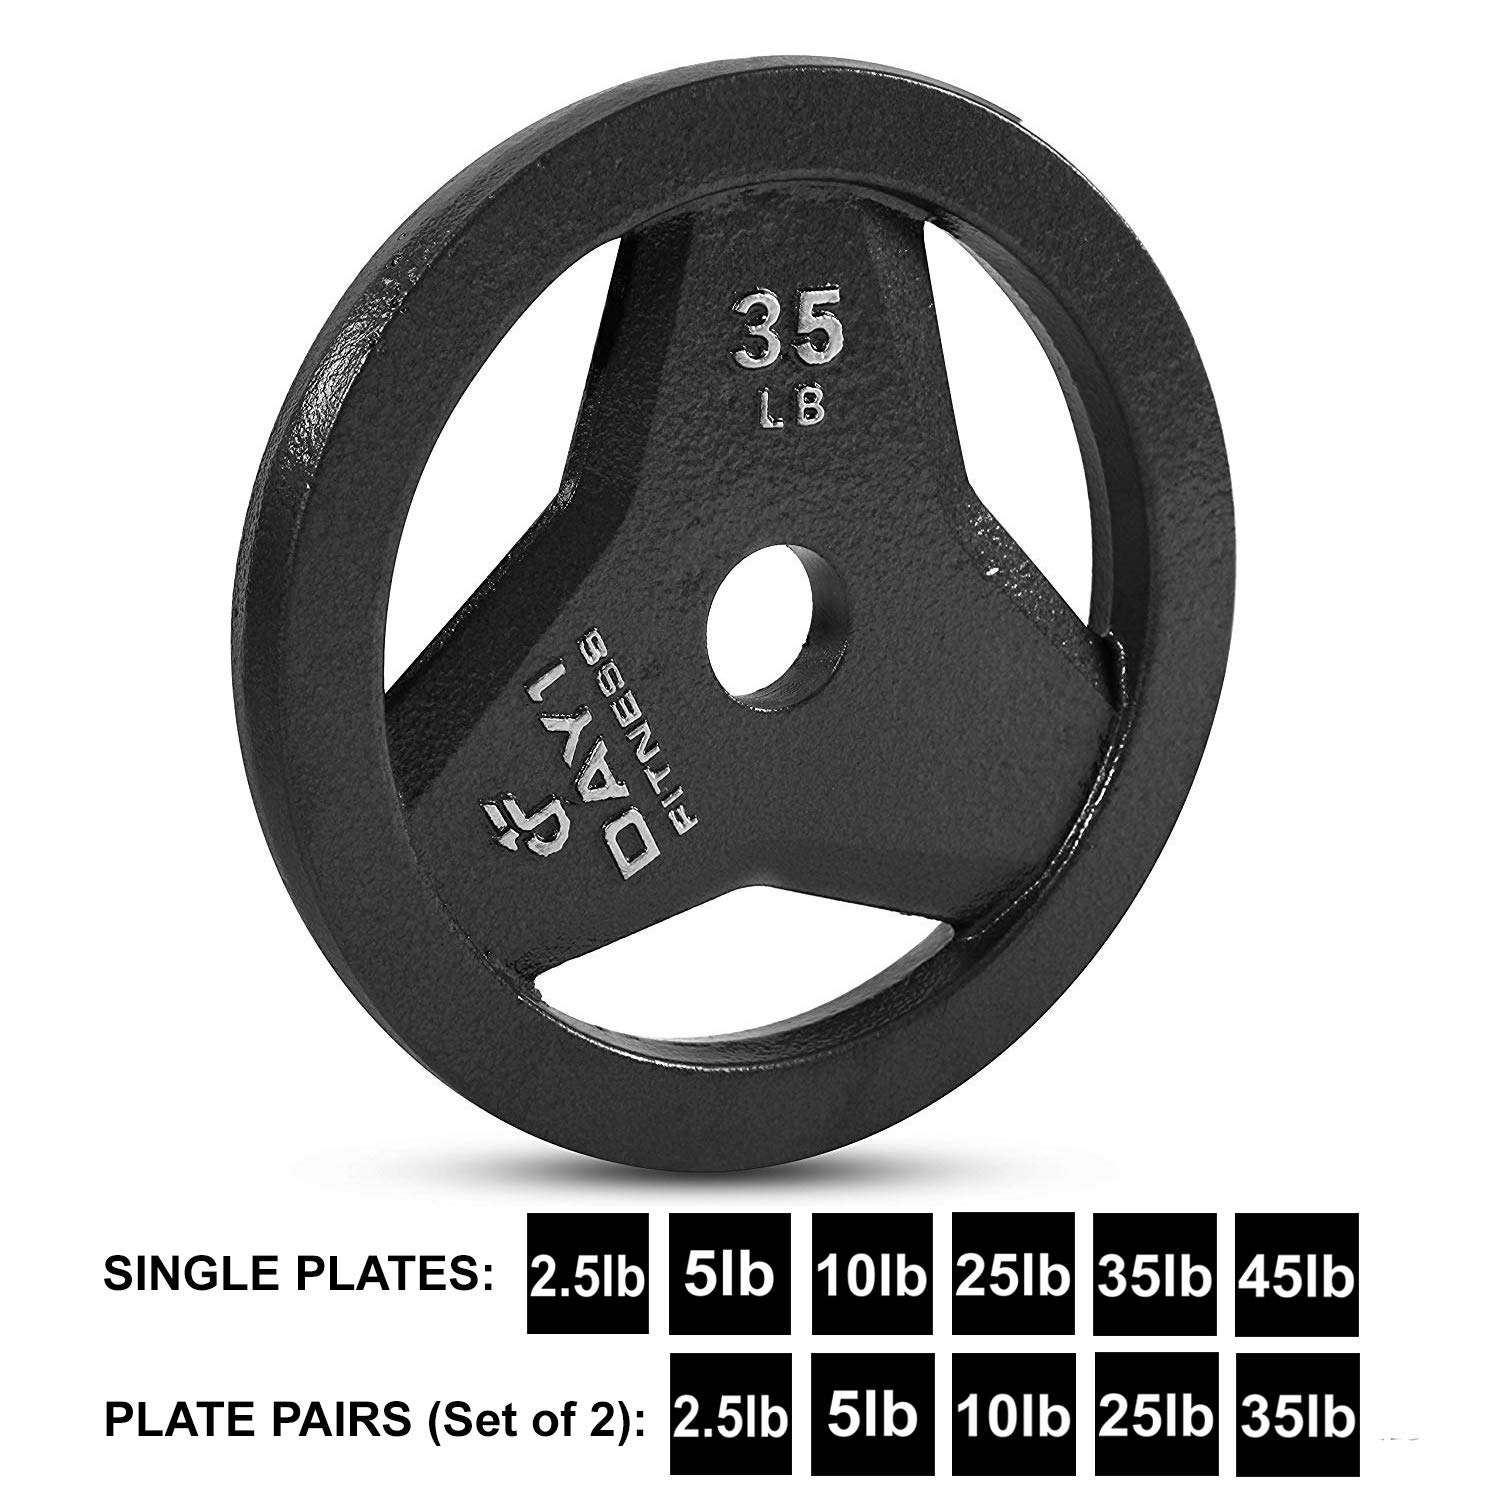 "Day 1 Fitness Cast Iron Olympic 2-Inch Grip Plate for Barbell, 35 Pound Single Plate Iron Grip Plates for Weightlifting, Crossfit - 2"" Weight Plate for Bodybuilding by Day 1 Fitness (Image #1)"